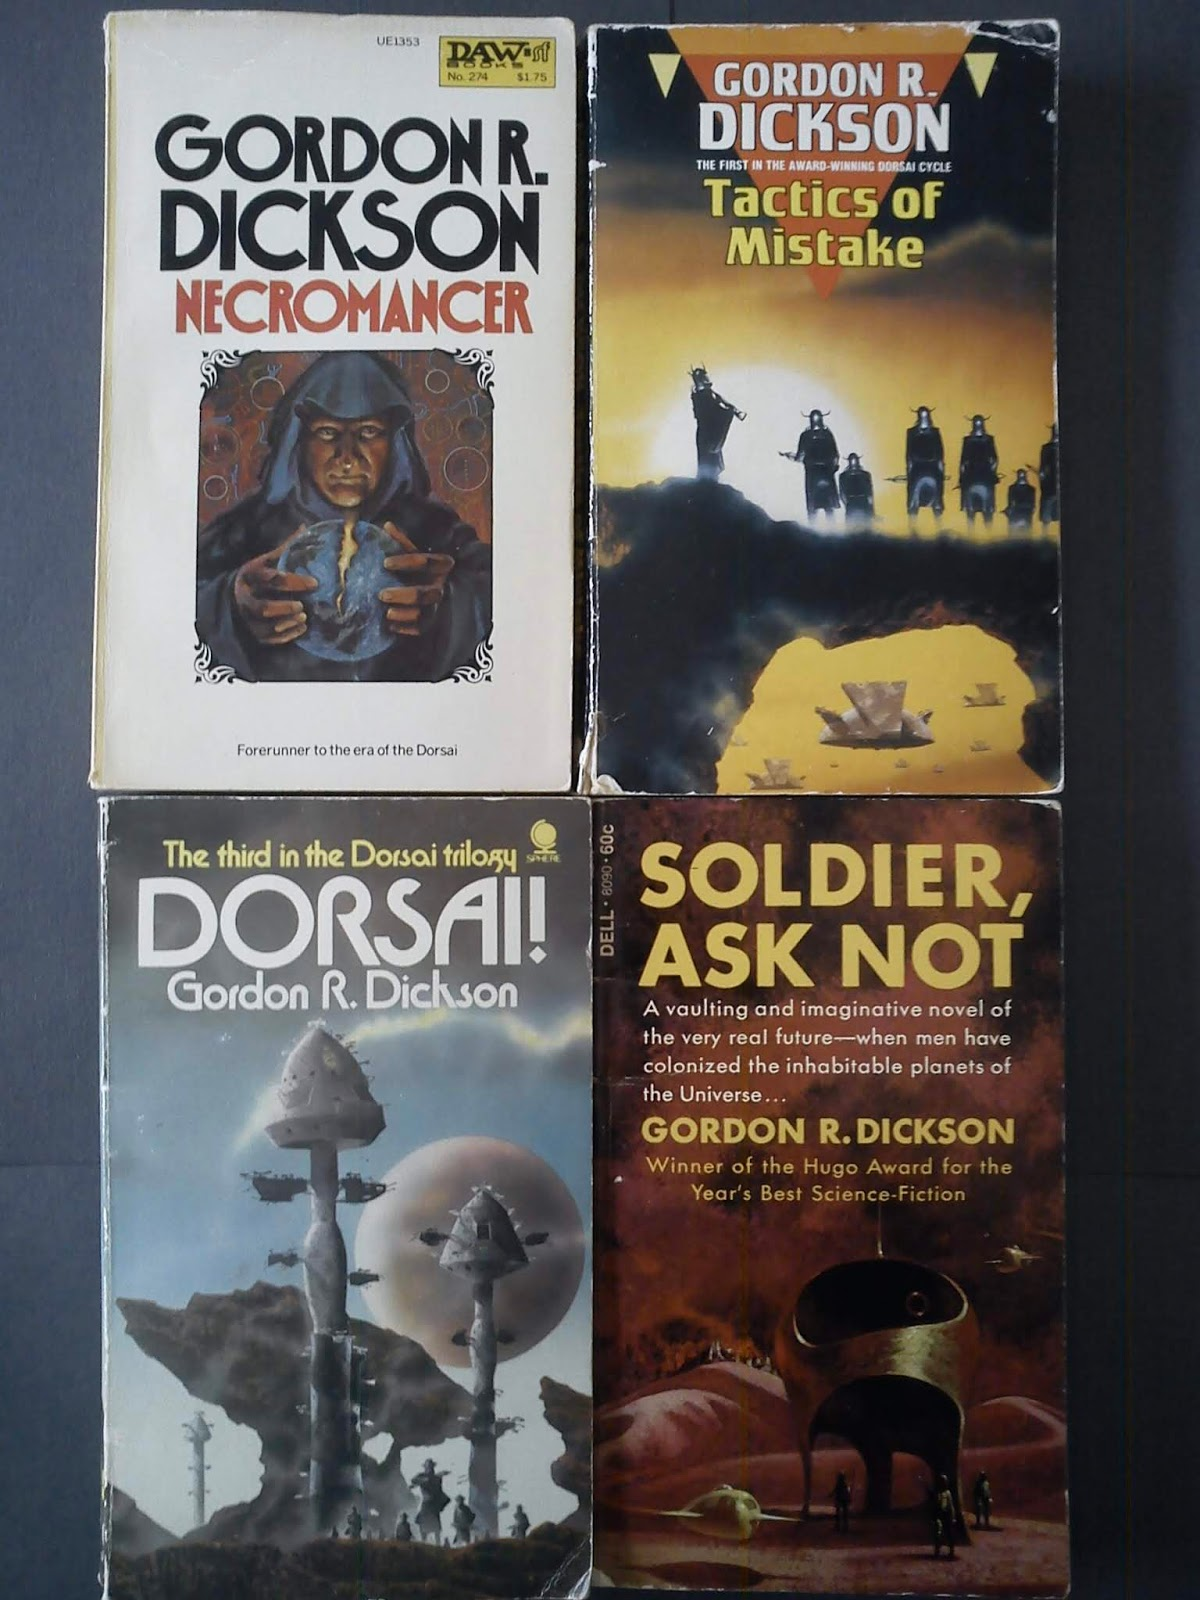 The pic tells of books by Gordon Dickson and he is featured below. But the  entry is about more authors than just him.